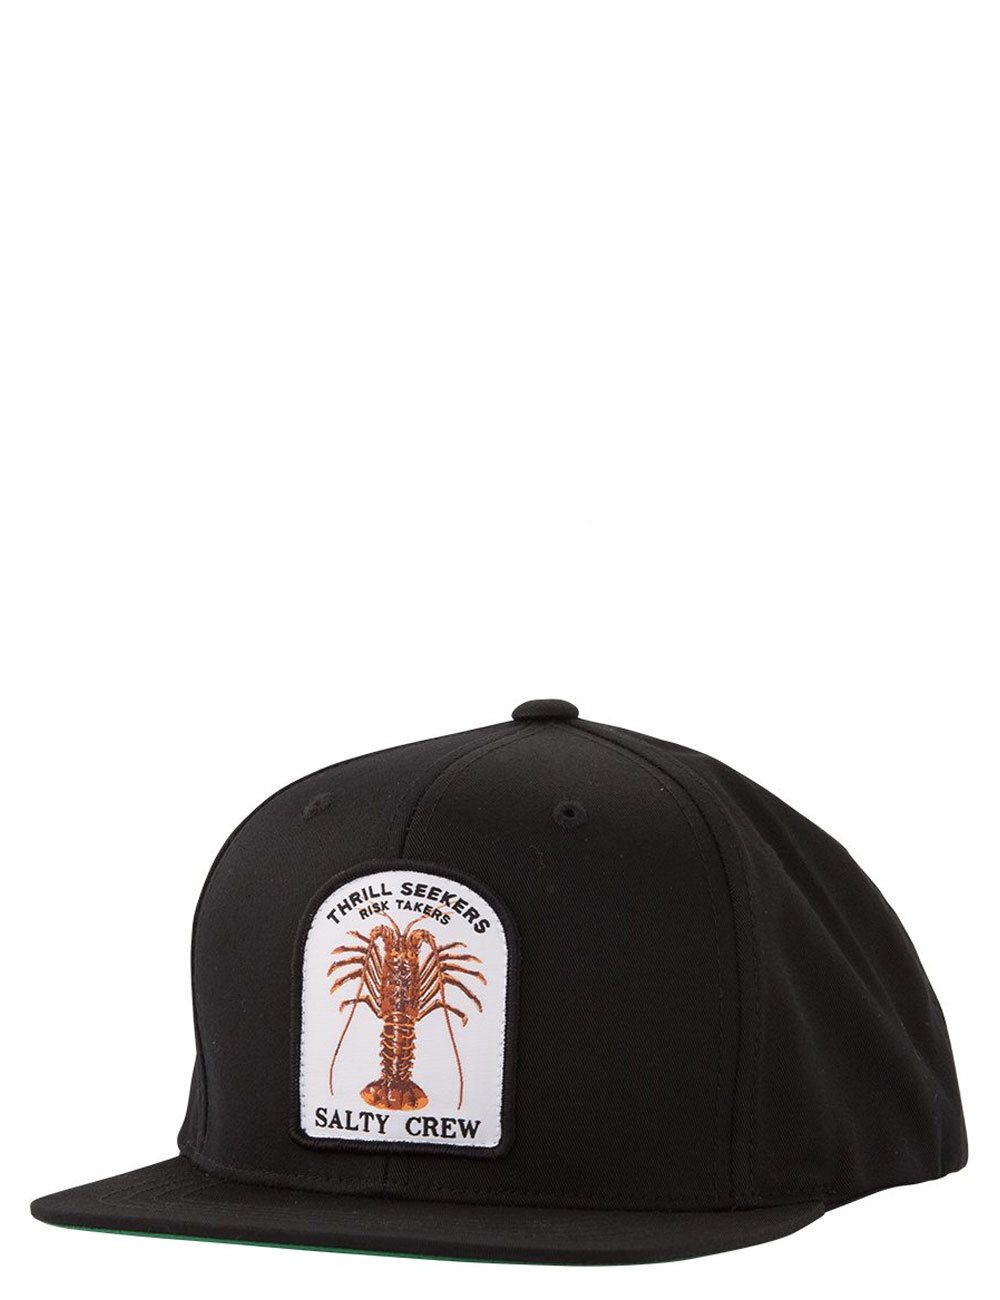 save off e425e 07fb0 BUGGIN OUT 6 PANEL CAP - Men s Accessories   Surf   Skate Brands    Streetwear - SALTY CREW W19